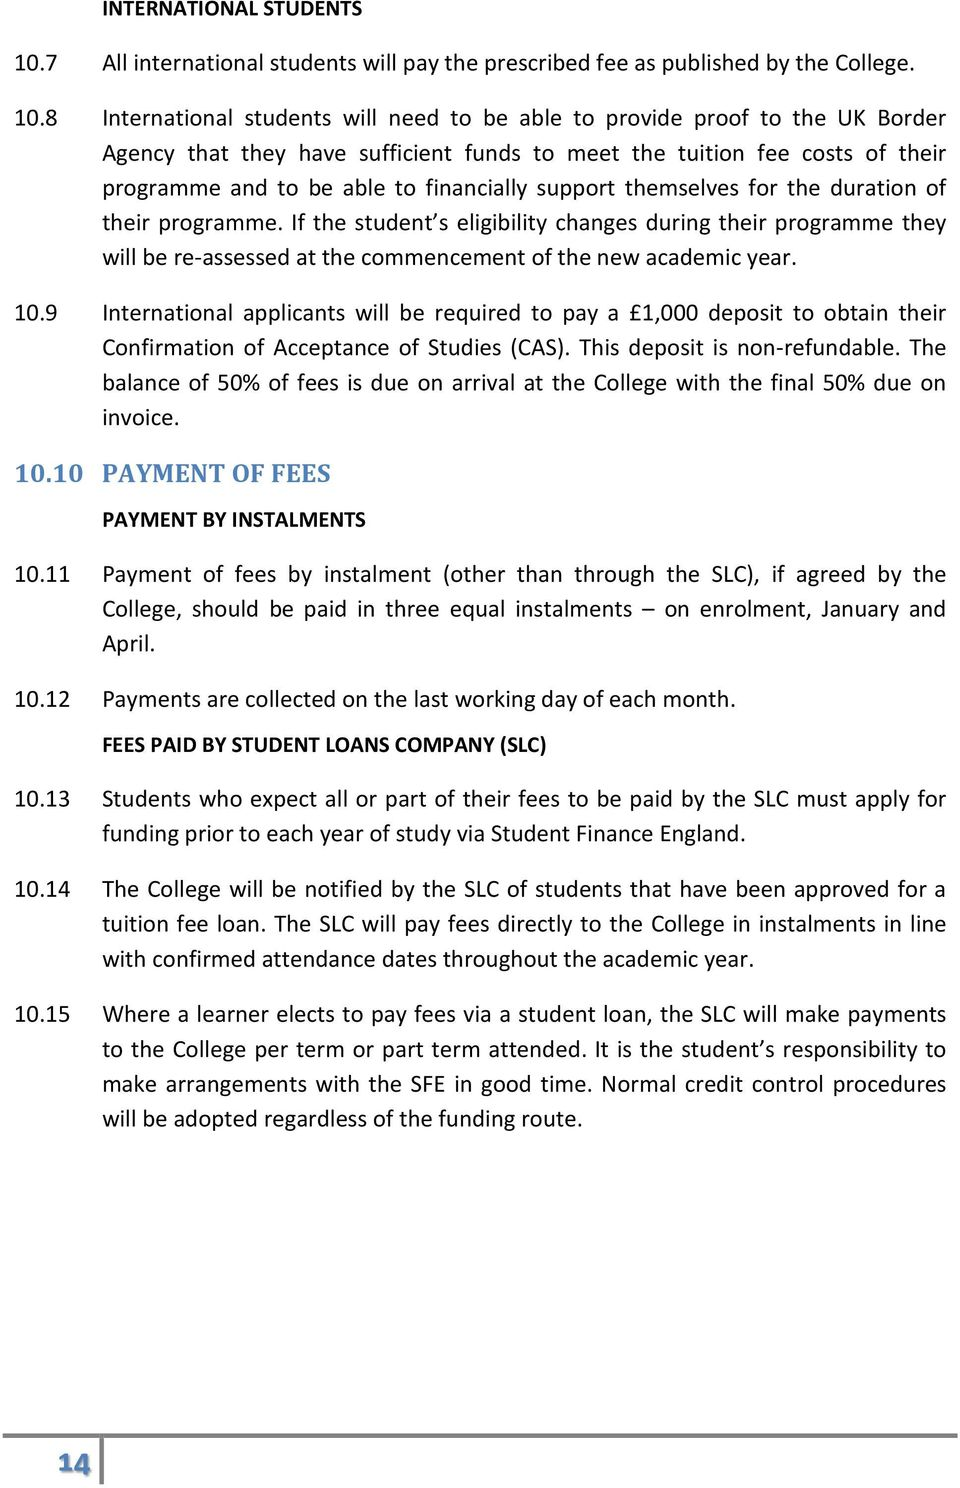 8 International students will need to be able to provide proof to the UK Border Agency that they have sufficient funds to meet the tuition fee costs of their programme and to be able to financially